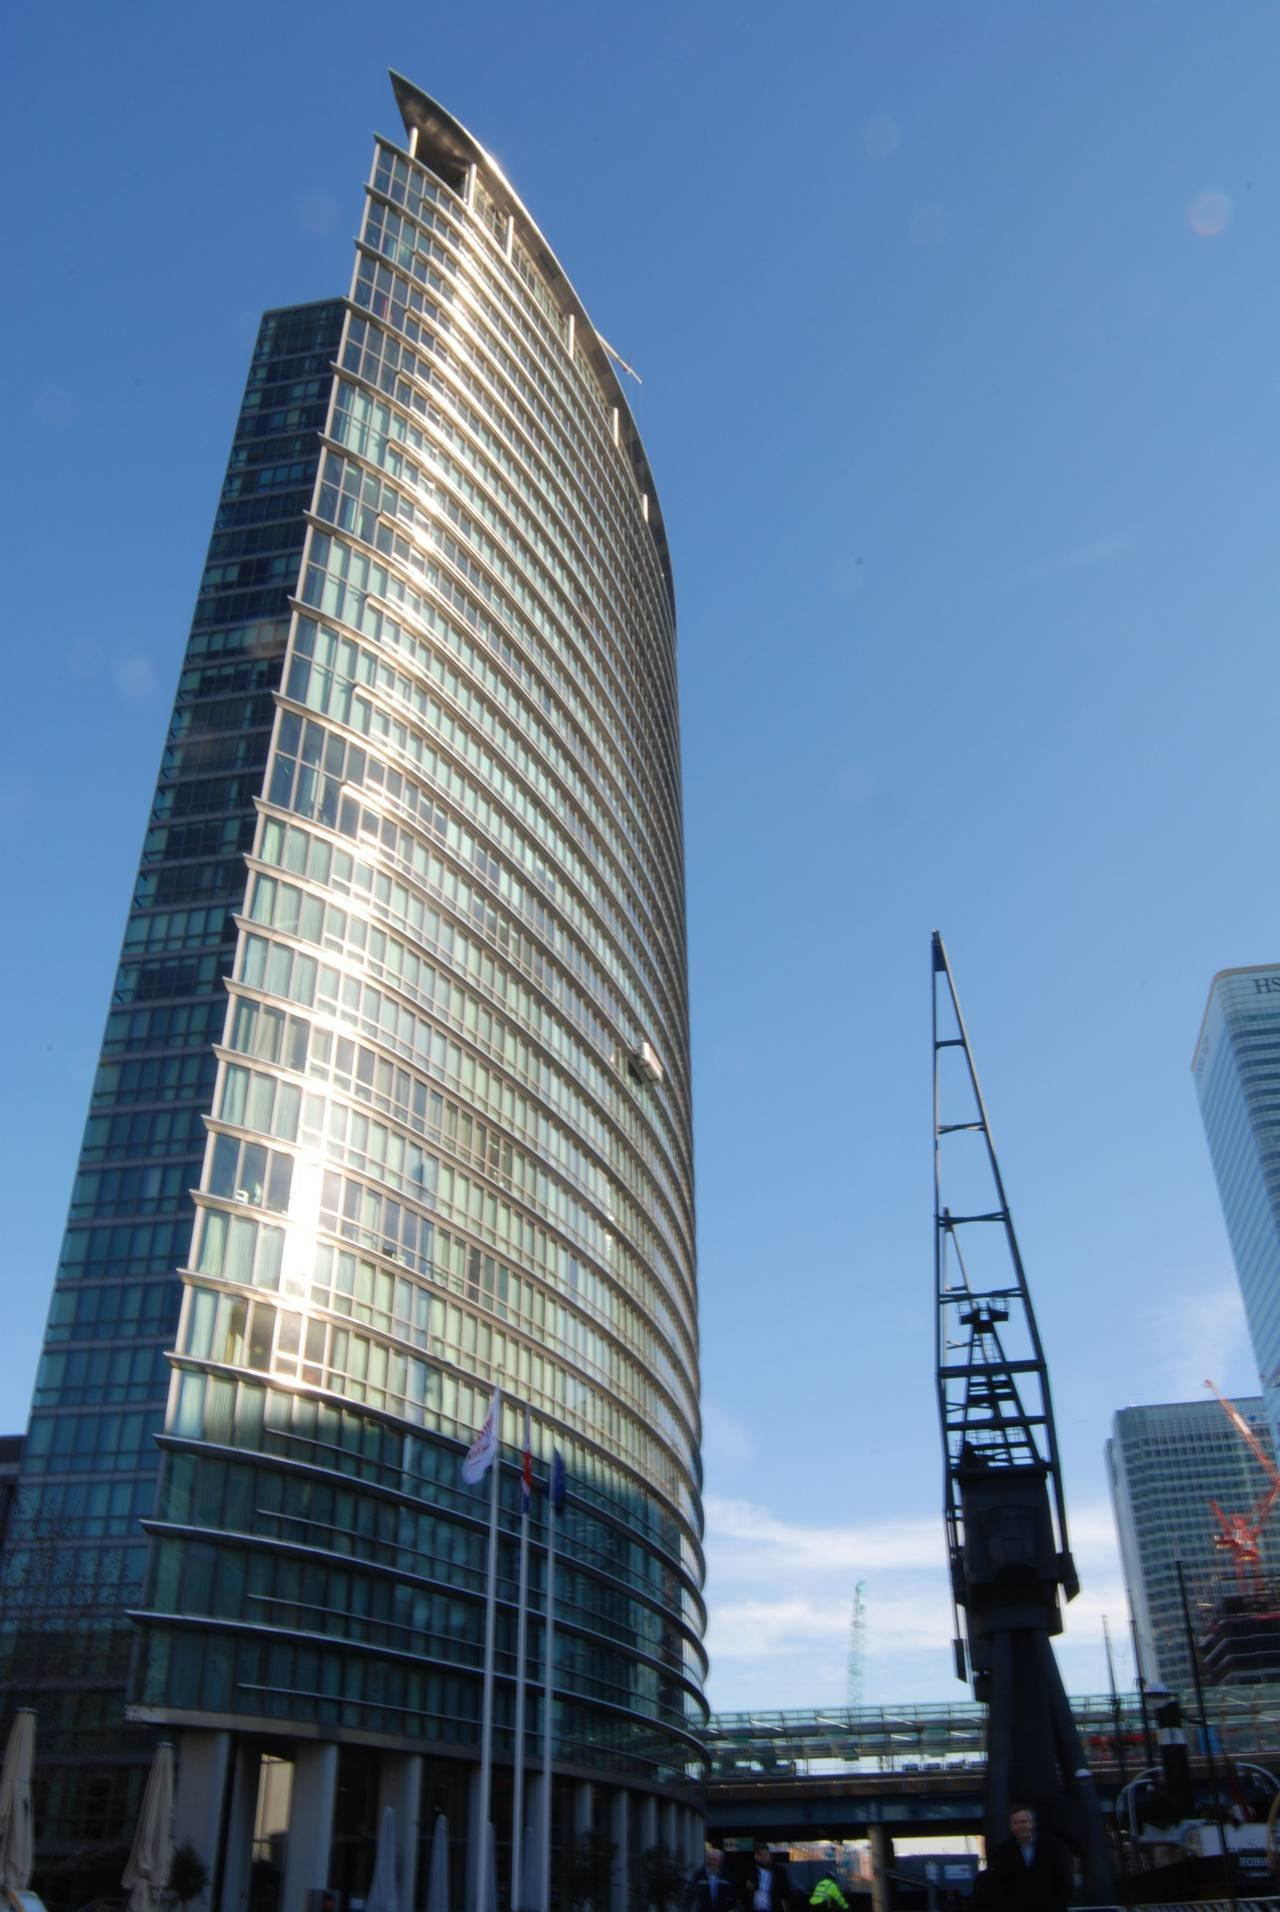 Best 1 Bedroom Flat To Rent Canary Wharf Canary Wharf E E14 4Eg With Pictures Original 1024 x 768